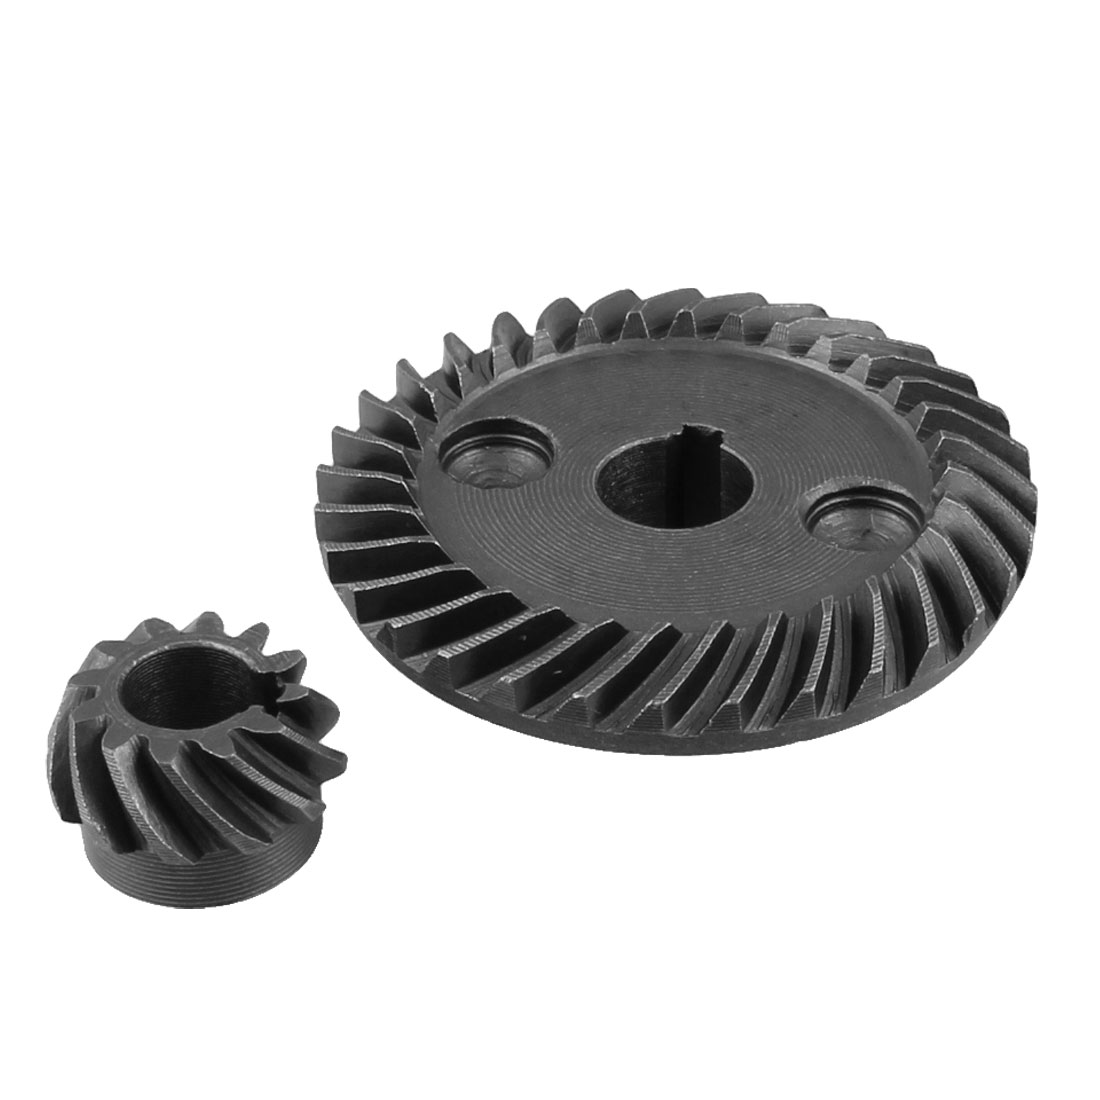 New Metal Spiral Bevel Gear Set For Makita 9523 Angle Sander Angle Grinder